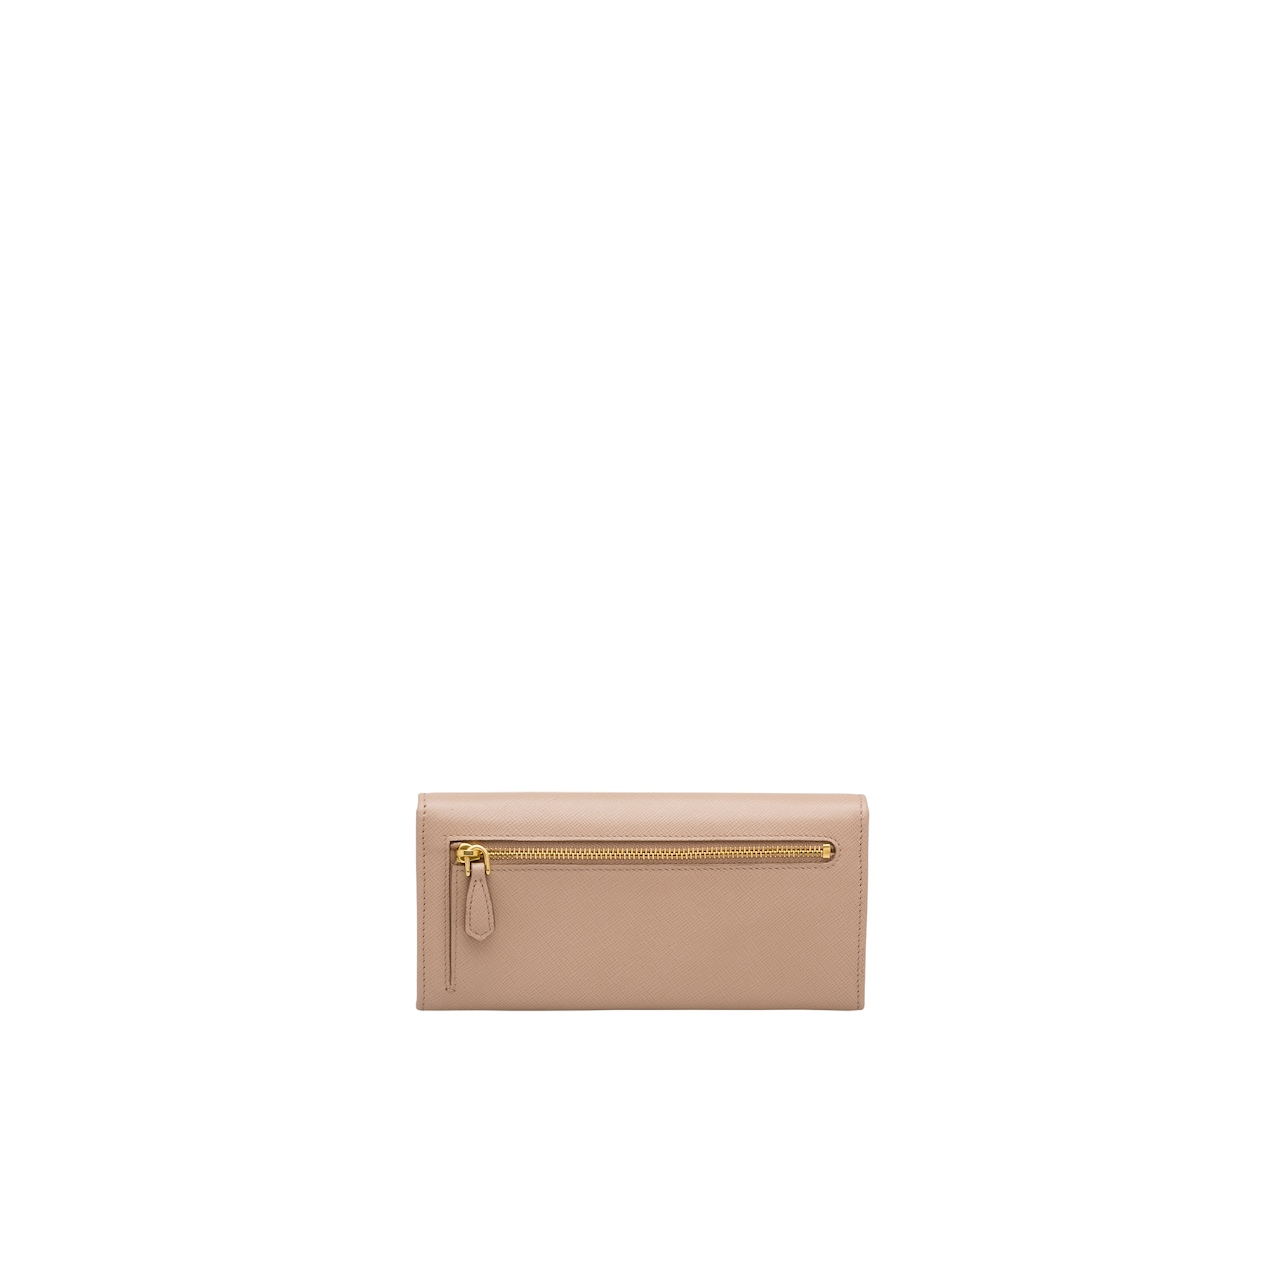 Prada Leather Wallet 5